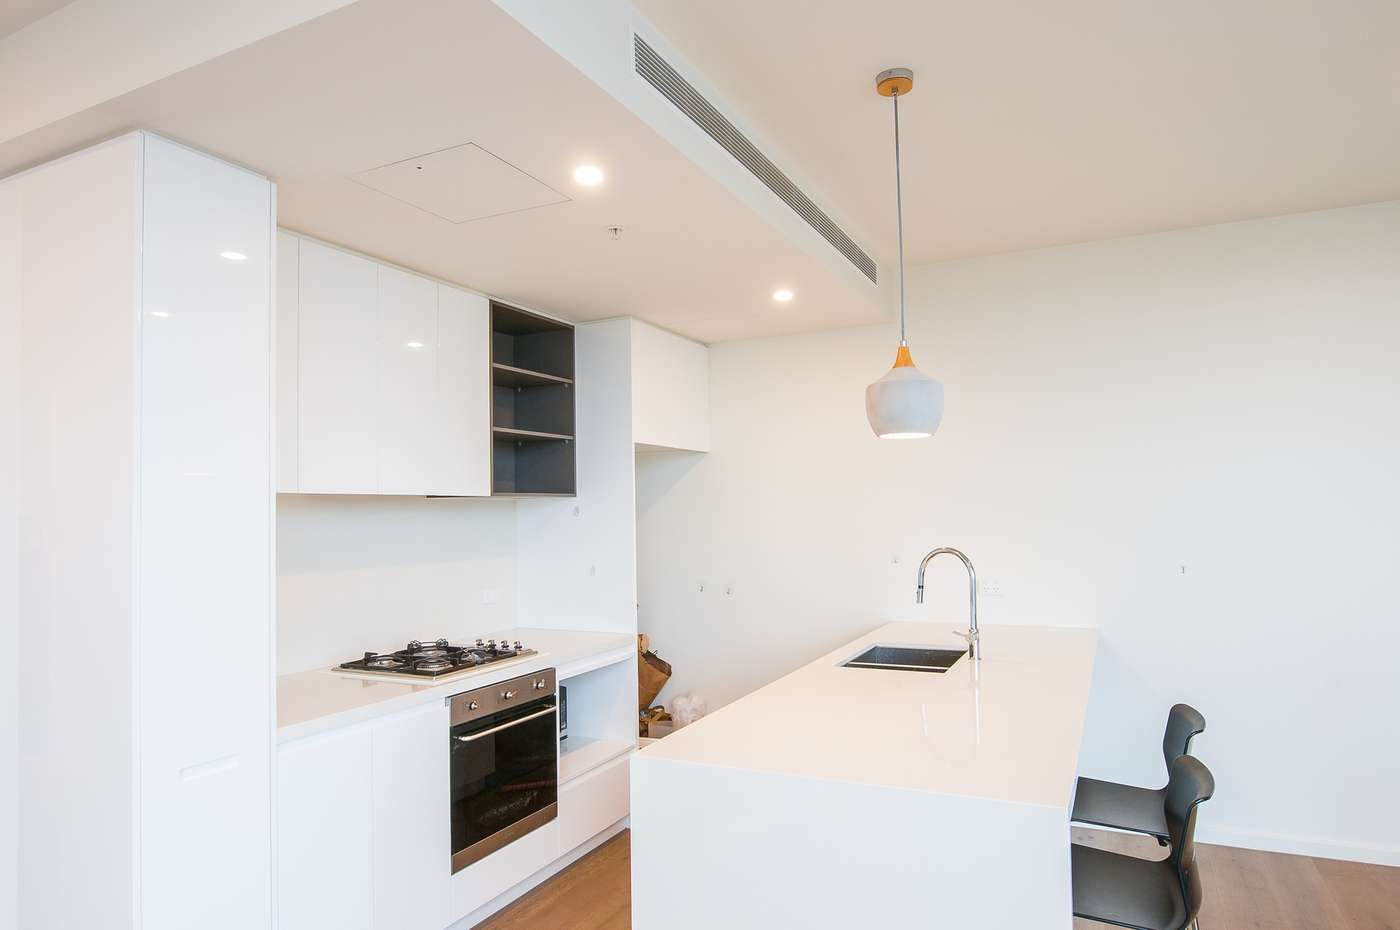 Main view of Homely apartment listing, 501/2-6 Duckett Street, Brunswick, VIC 3056